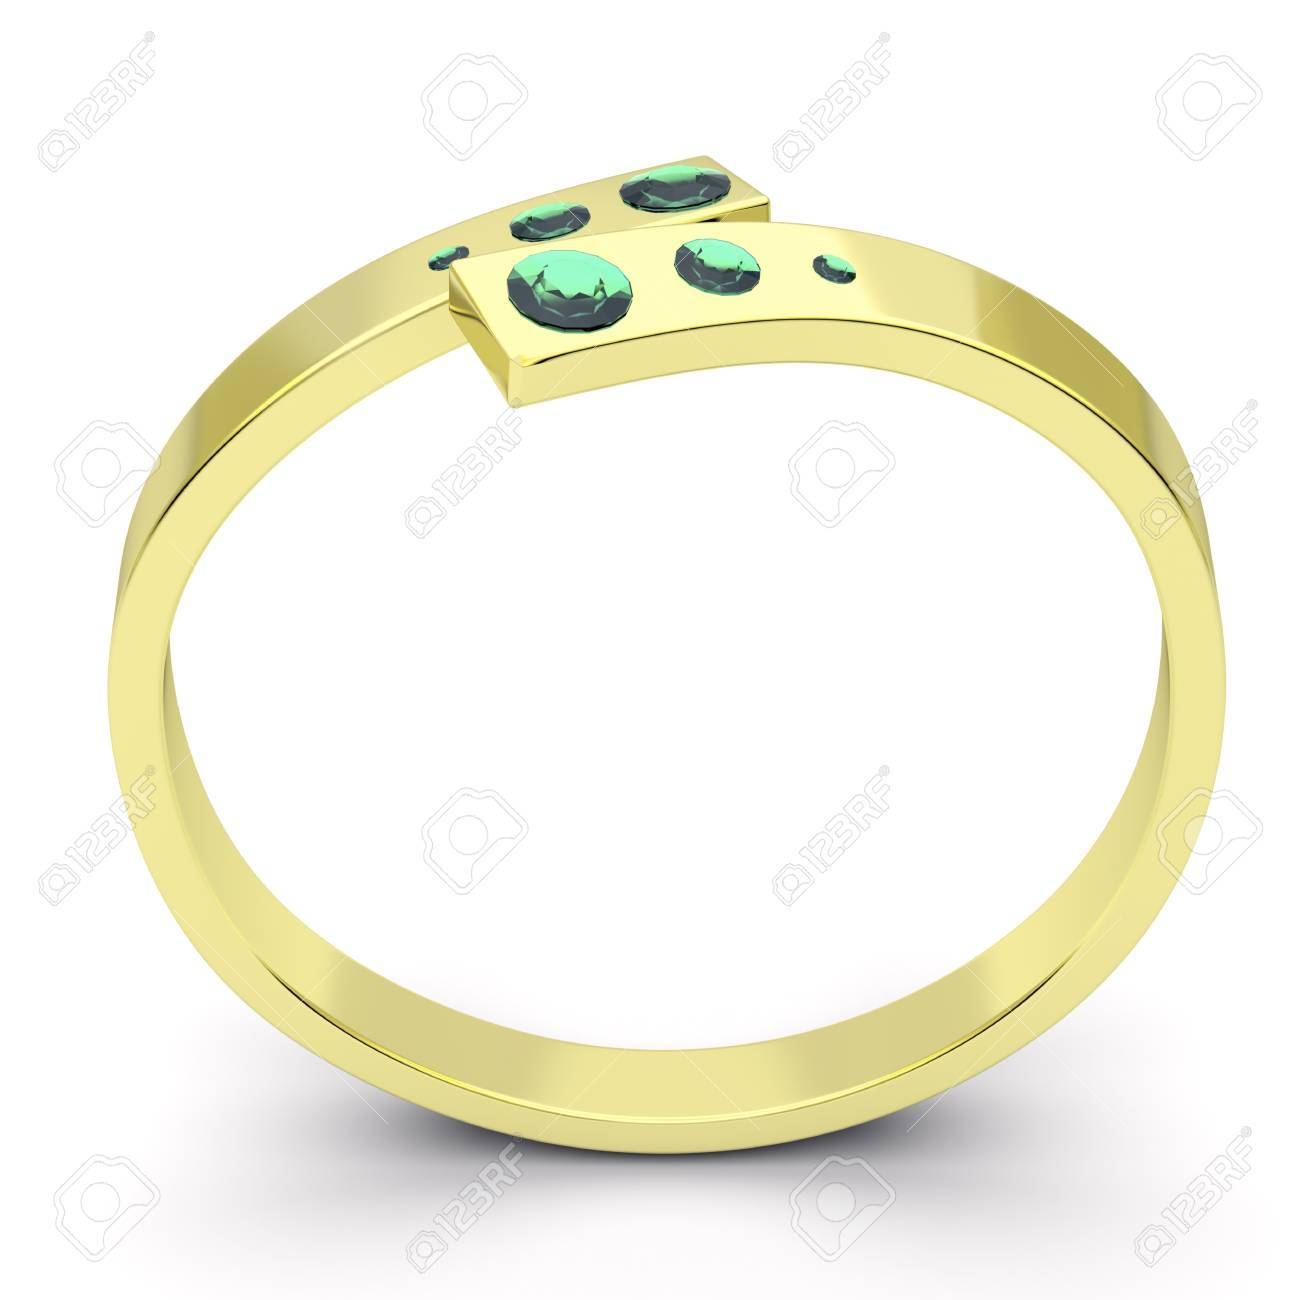 Golden ring with green diamonds Stock Photo - 11541621